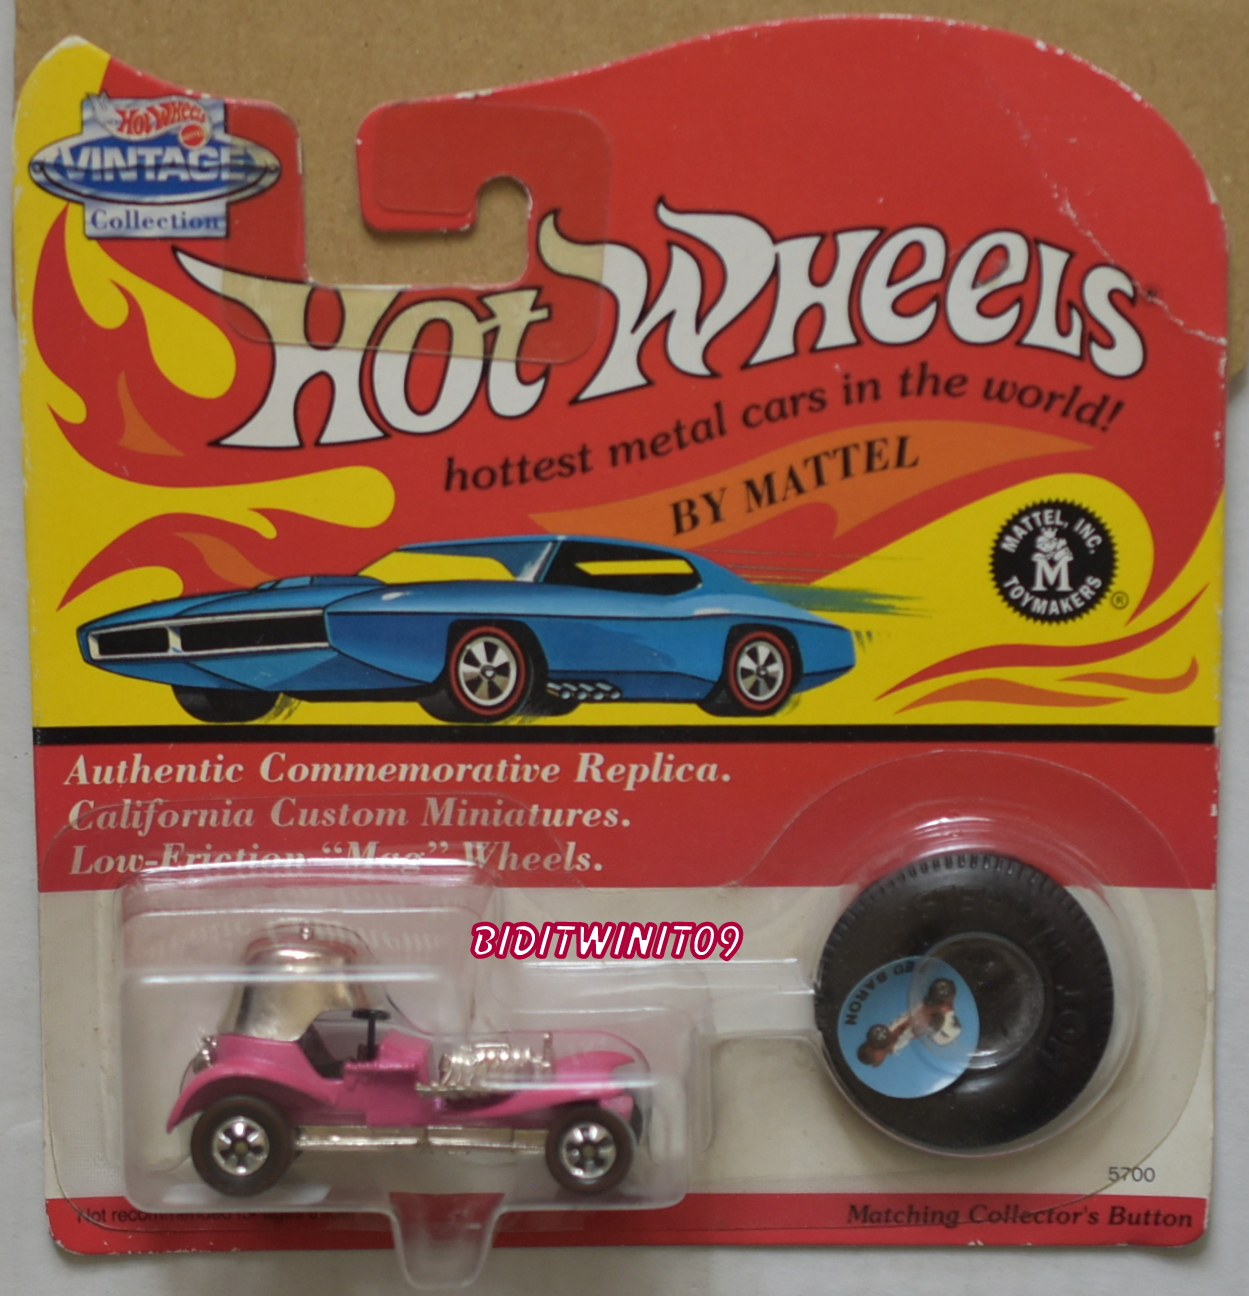 HOT WHEELS VINTAGE COLLECTION RED BARON PINK